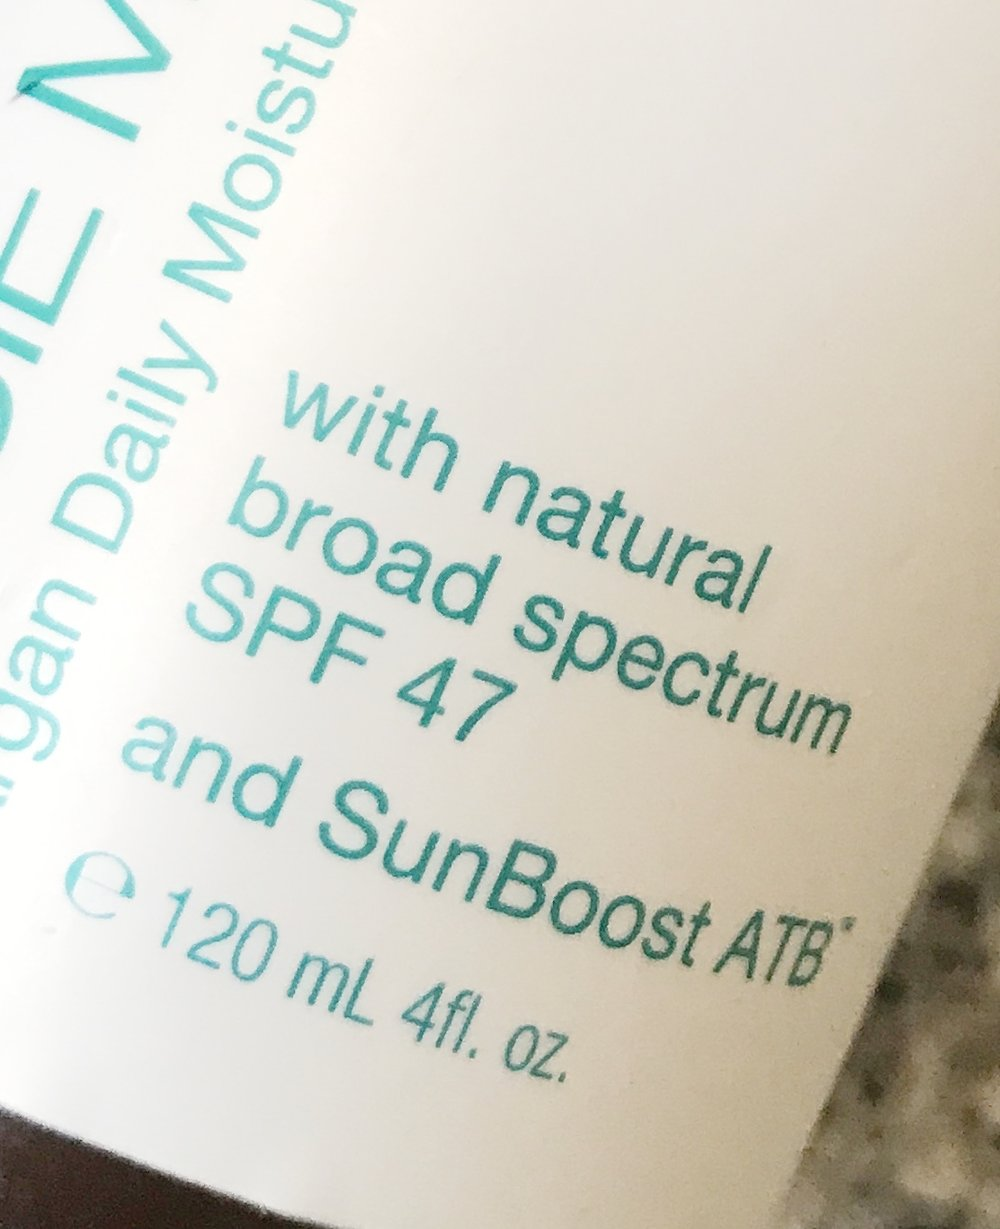 I like Josie Maran's brand of sunscreen, which clearly states on the bottle that it provides broad spectrum coverage.